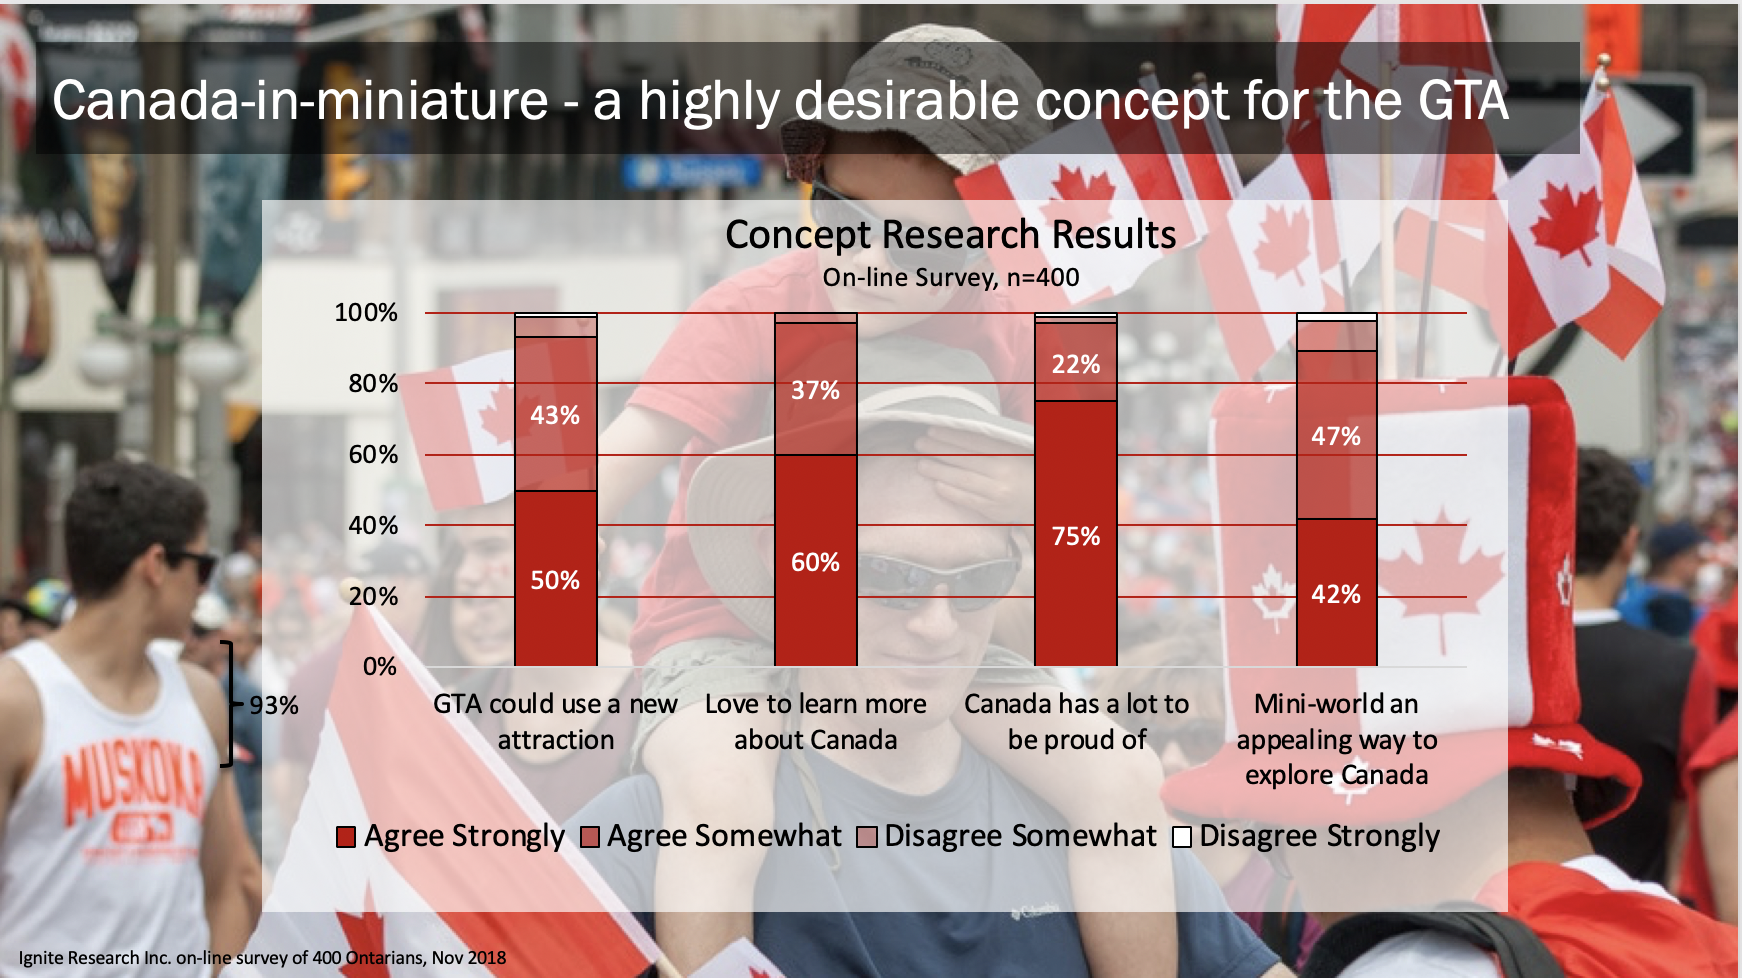 Source: Ignite Research Inc. On-Line Survey of 400 Ontarians, Nov 2018